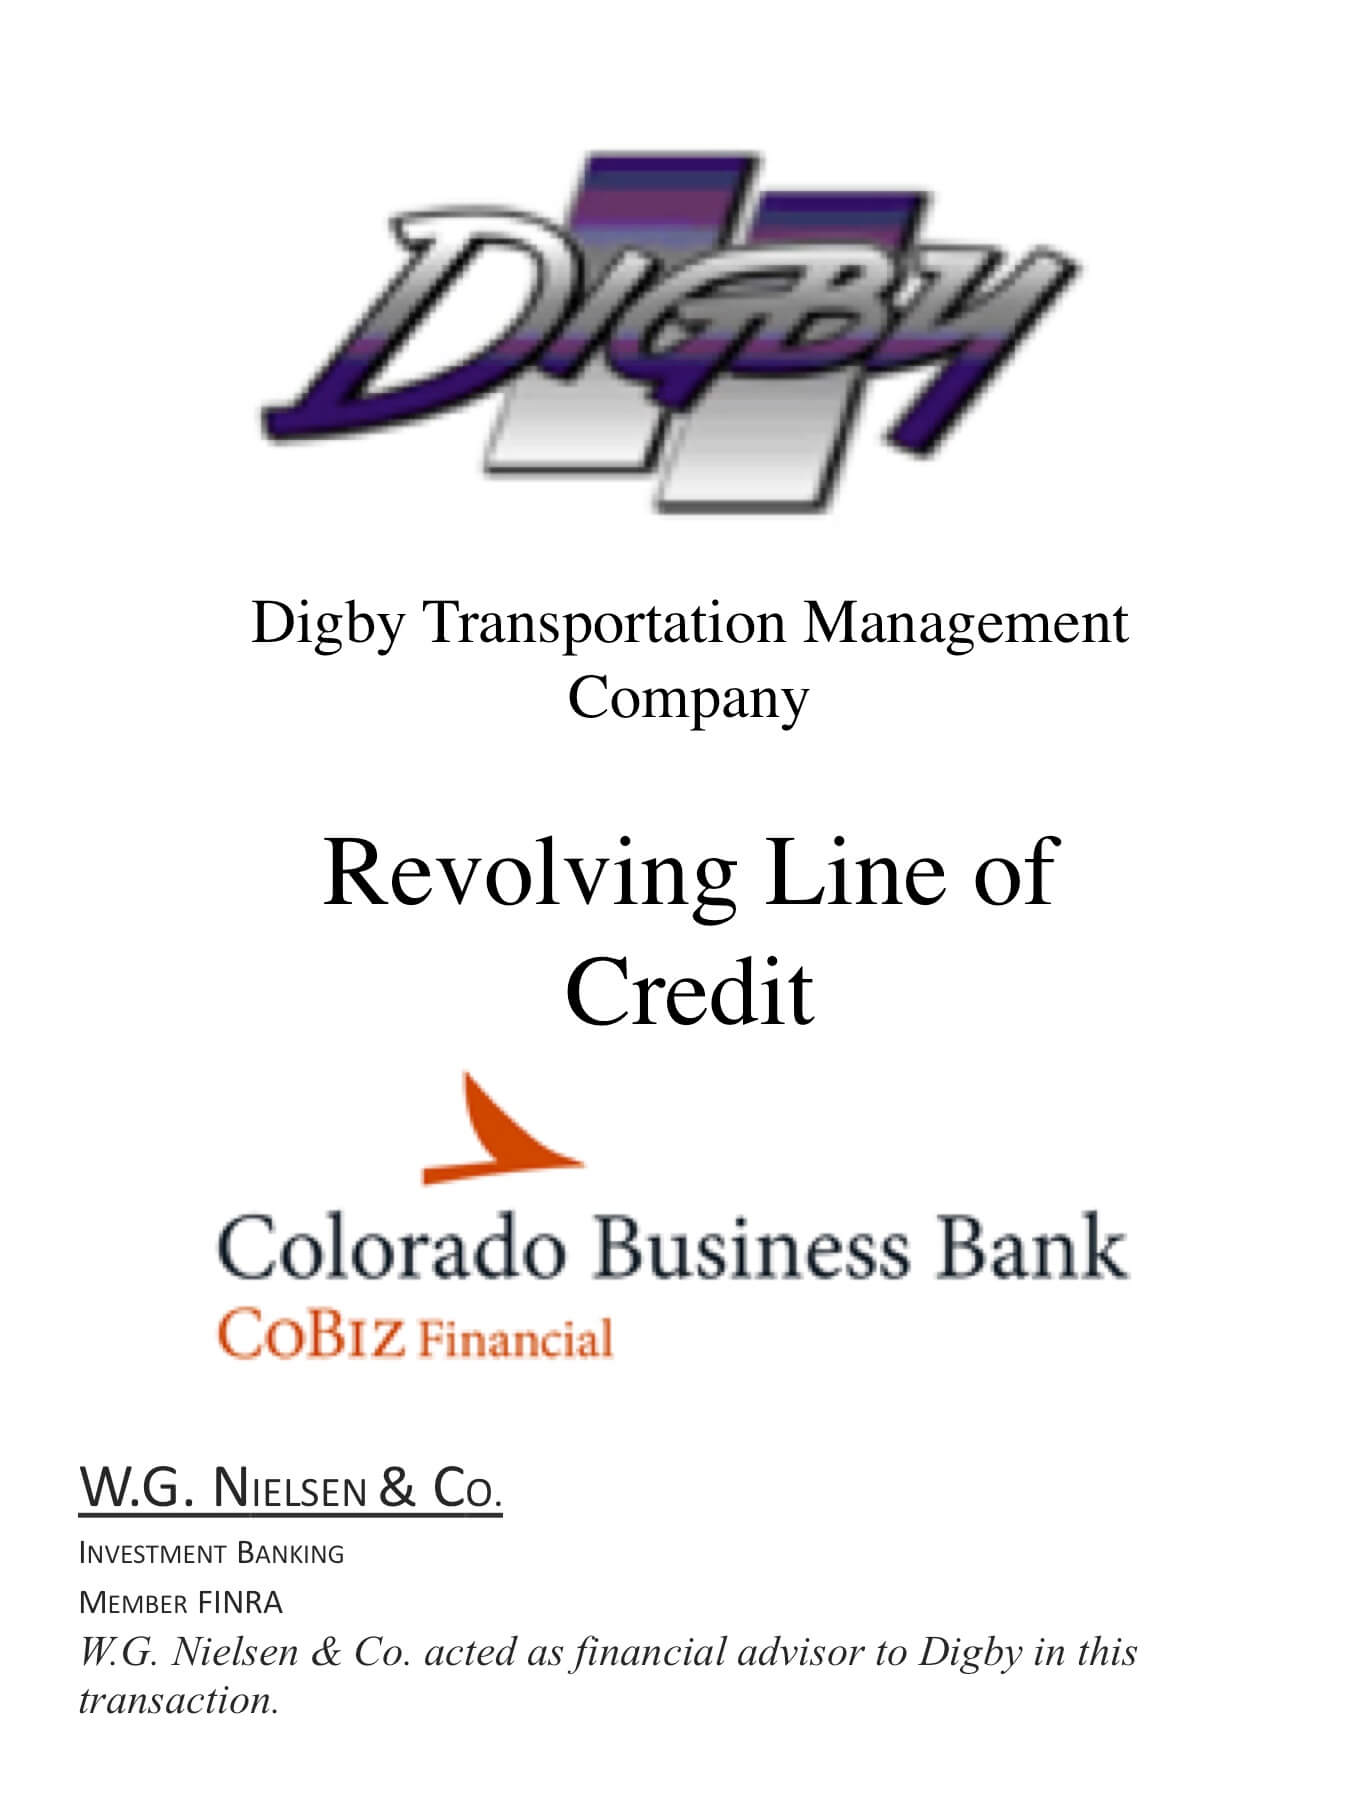 digby transportation management investment banking transaction